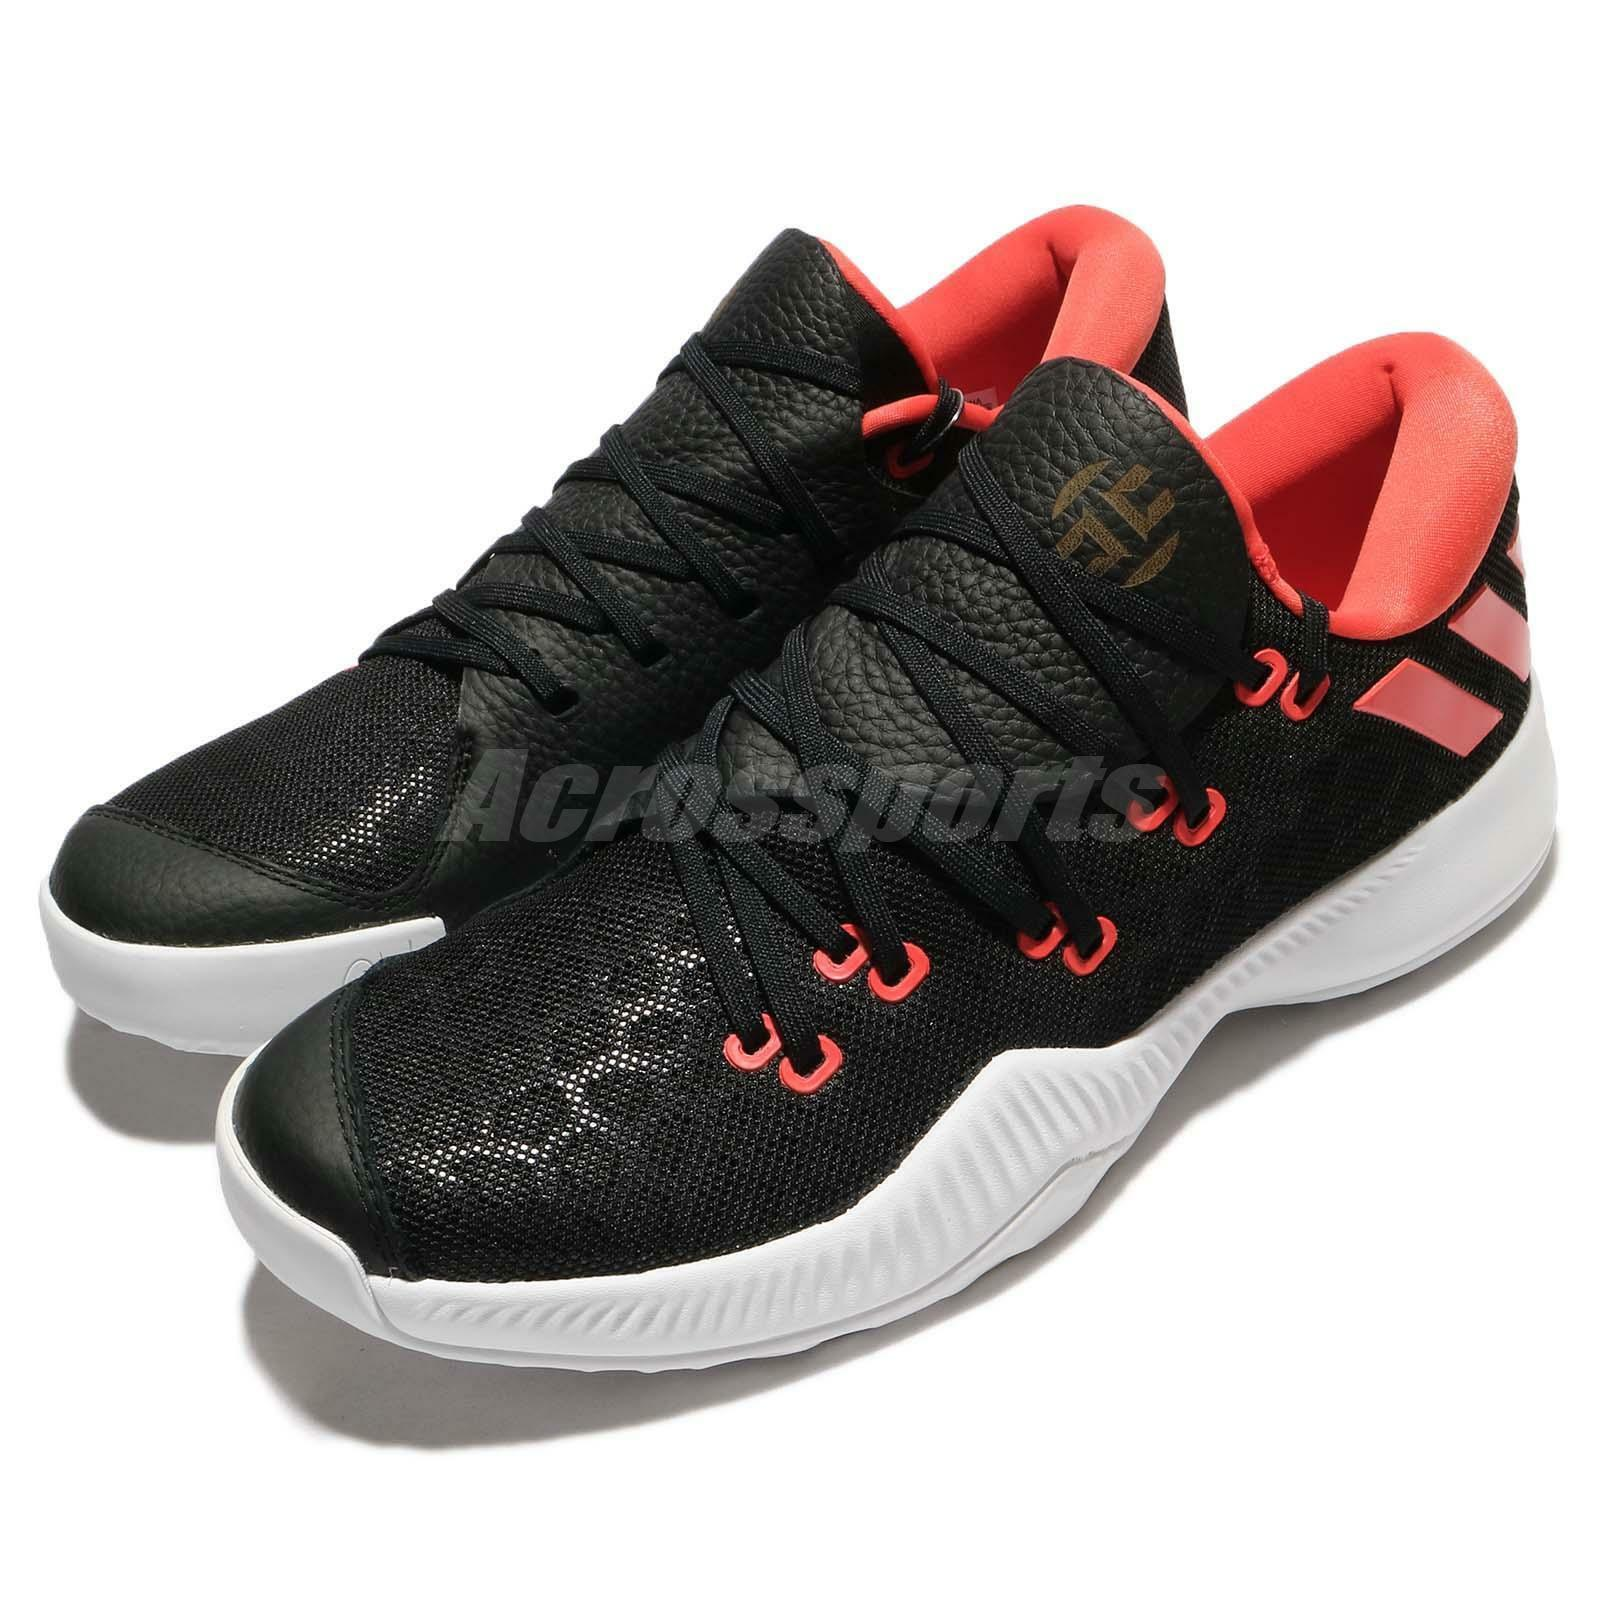 Adidas Harden B E James Bounce Black Red Men Basketball shoes Sneakers AC7820